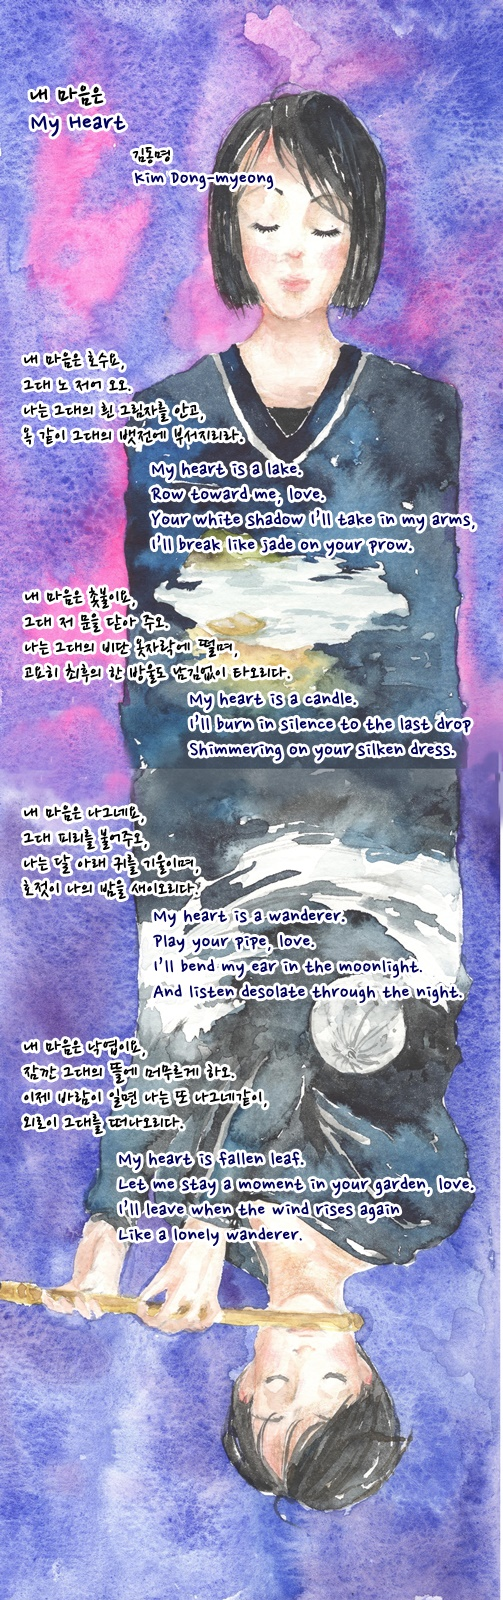 """Sights and Sounds: Korean Poetry """"My Heart"""""""